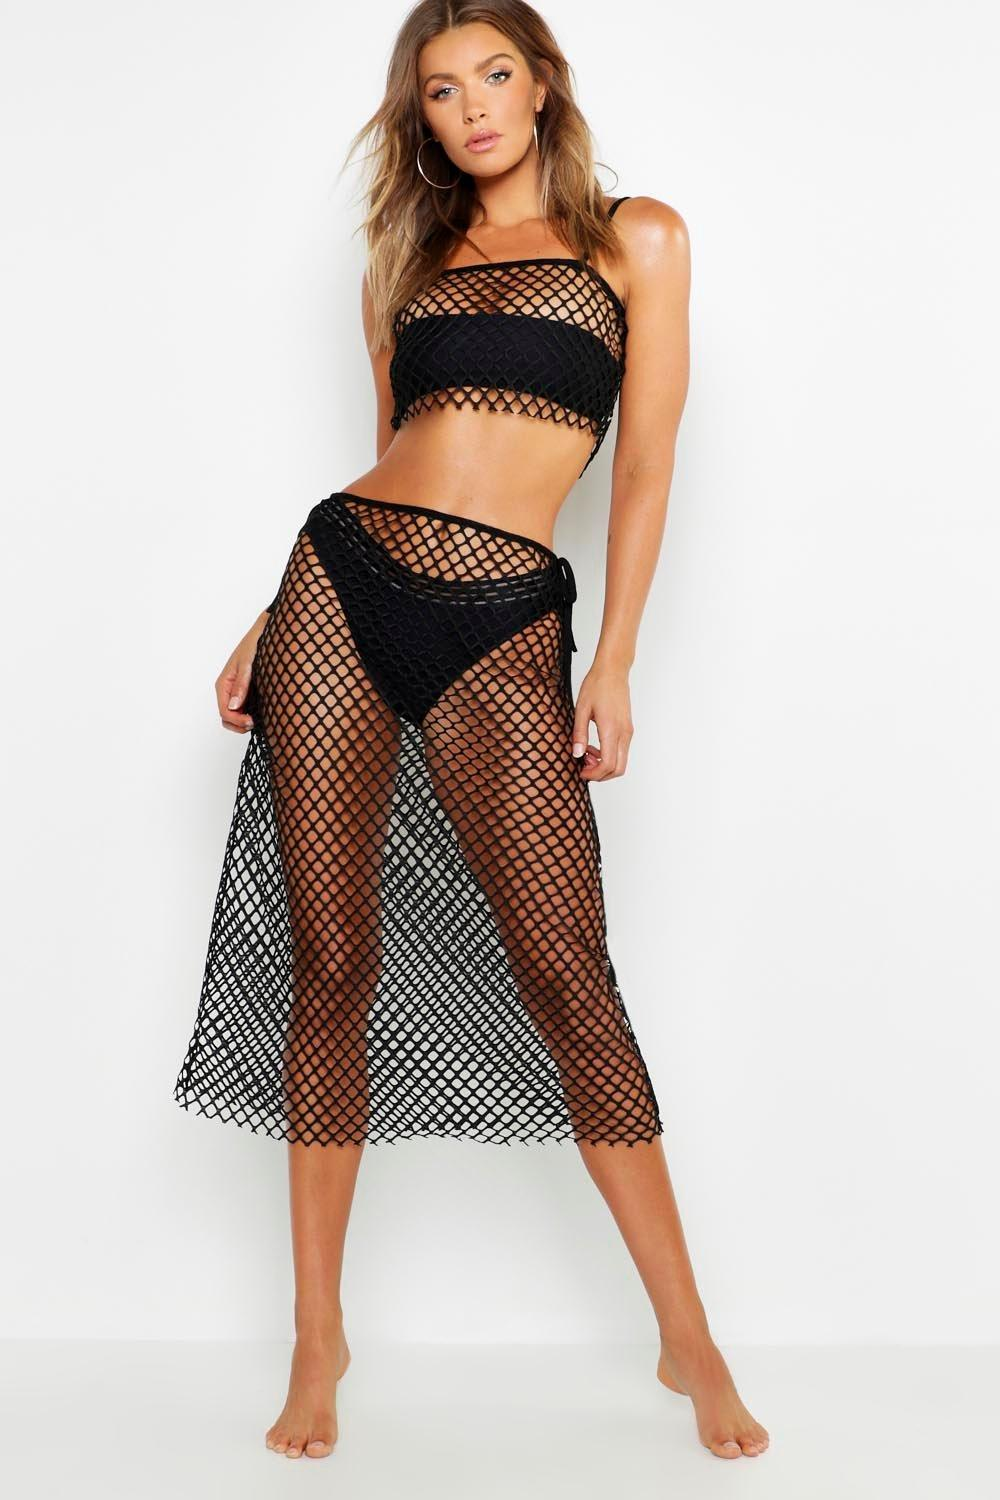 53194fa499 Boohoo Fishnet Maxi Beach Skirt Co-ord in Black - Lyst